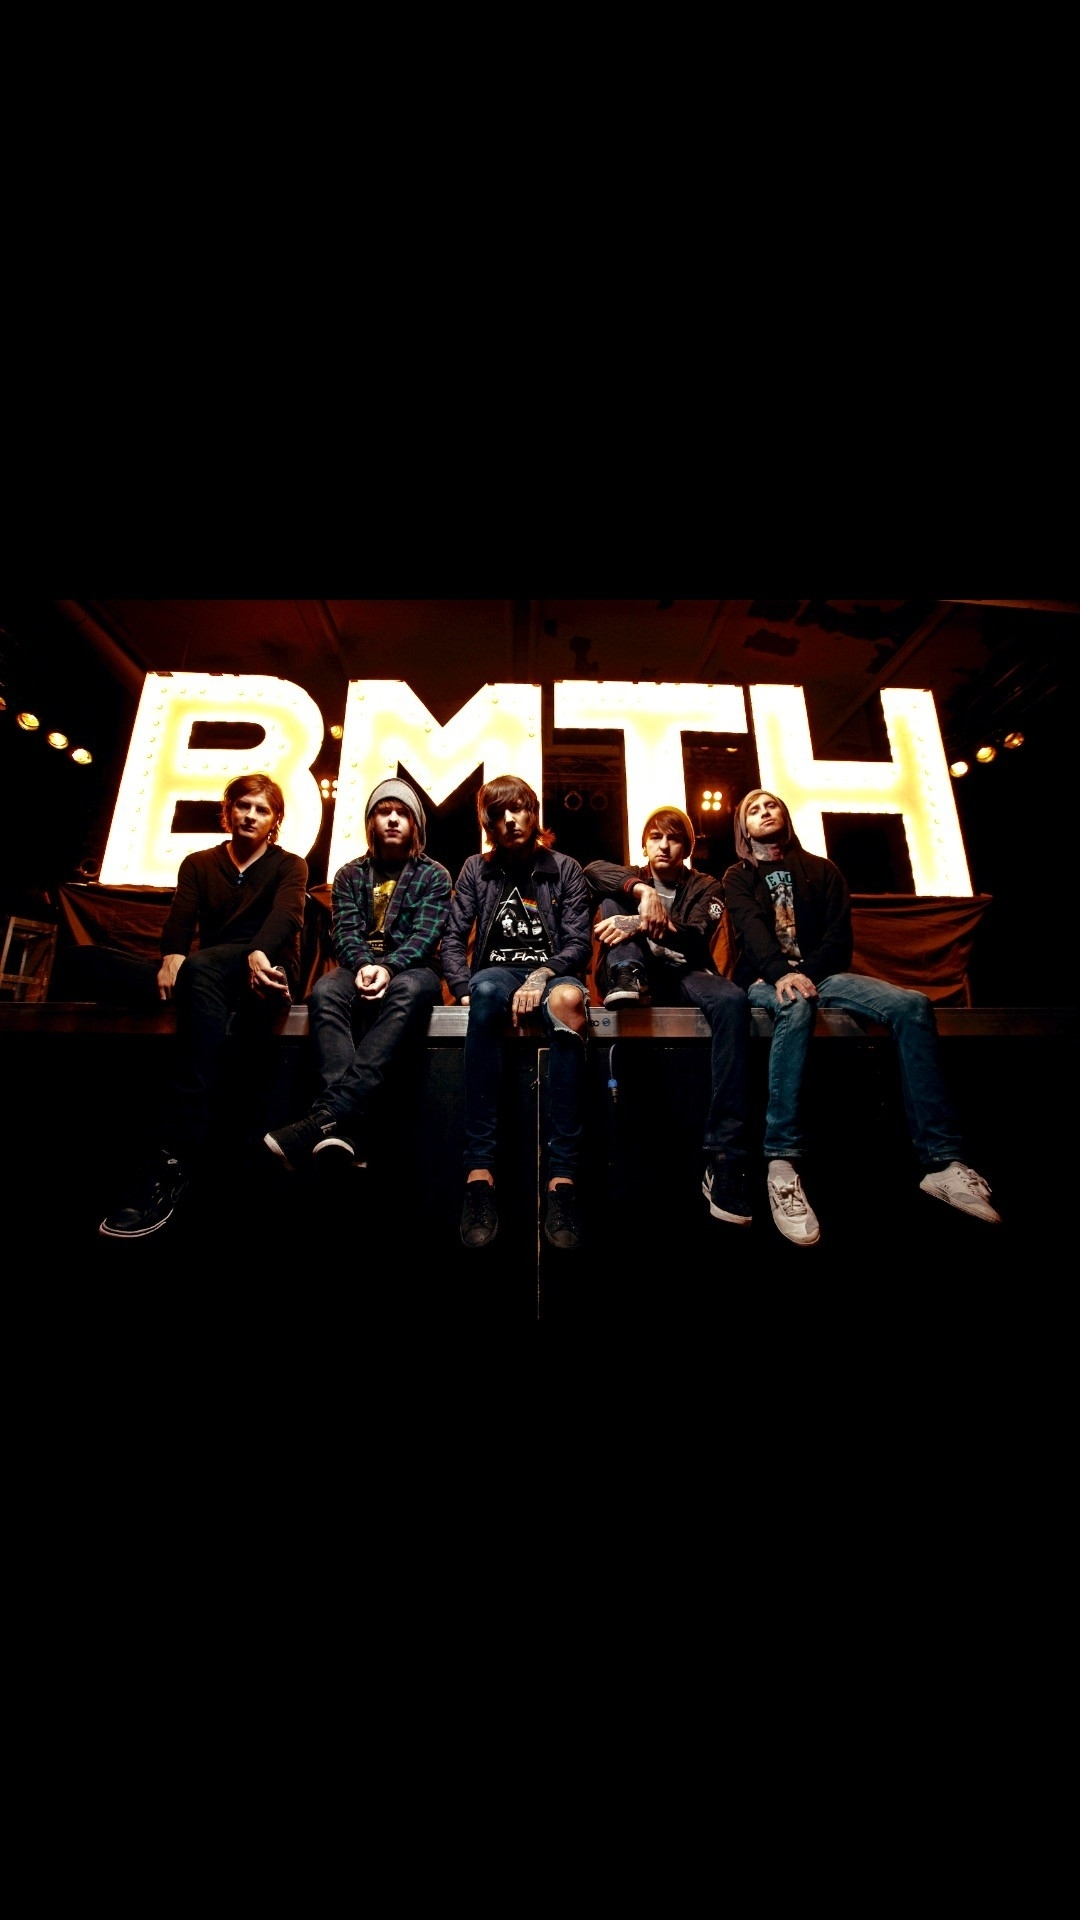 bmth iphone wallpaper (78+ images)